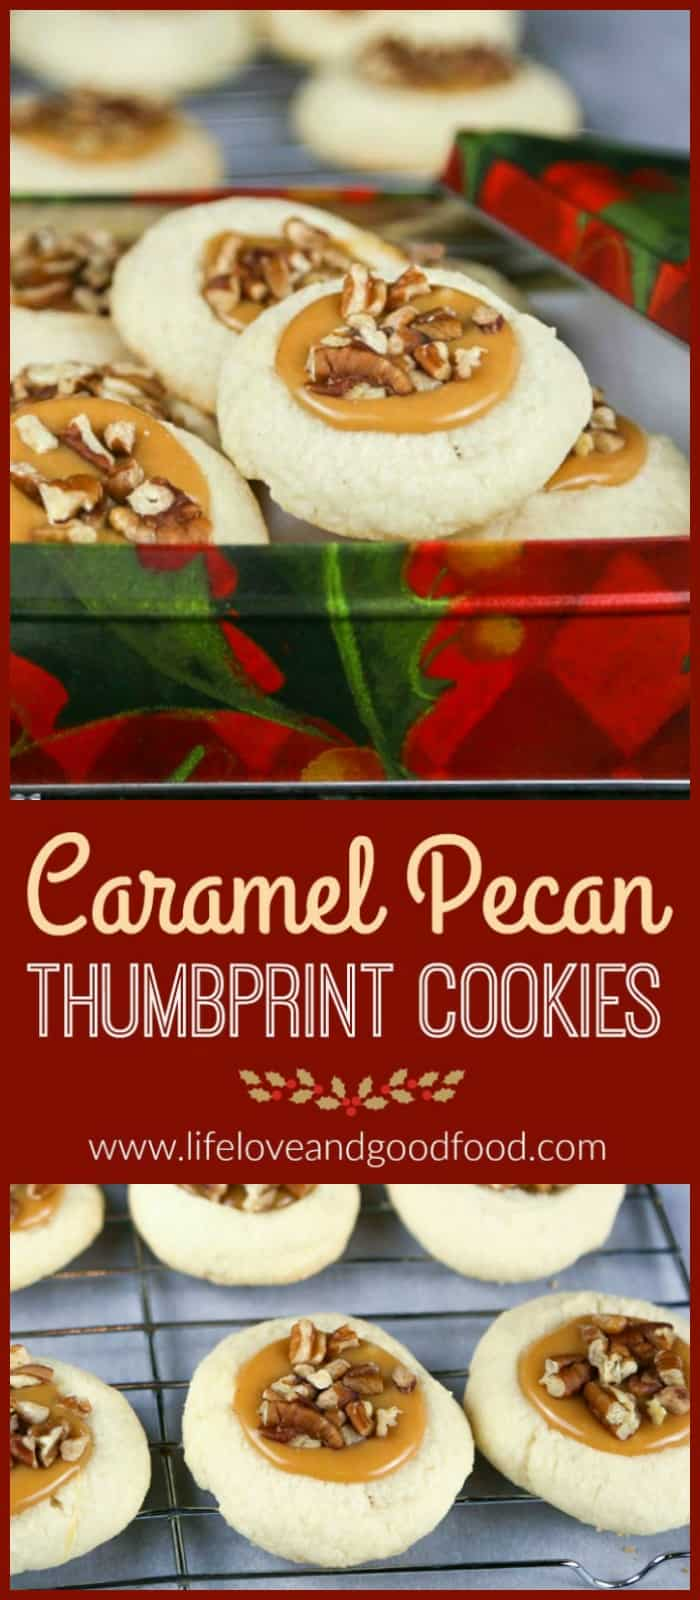 a holiday tin filled with shortbread cookies with a caramel and pecan filling